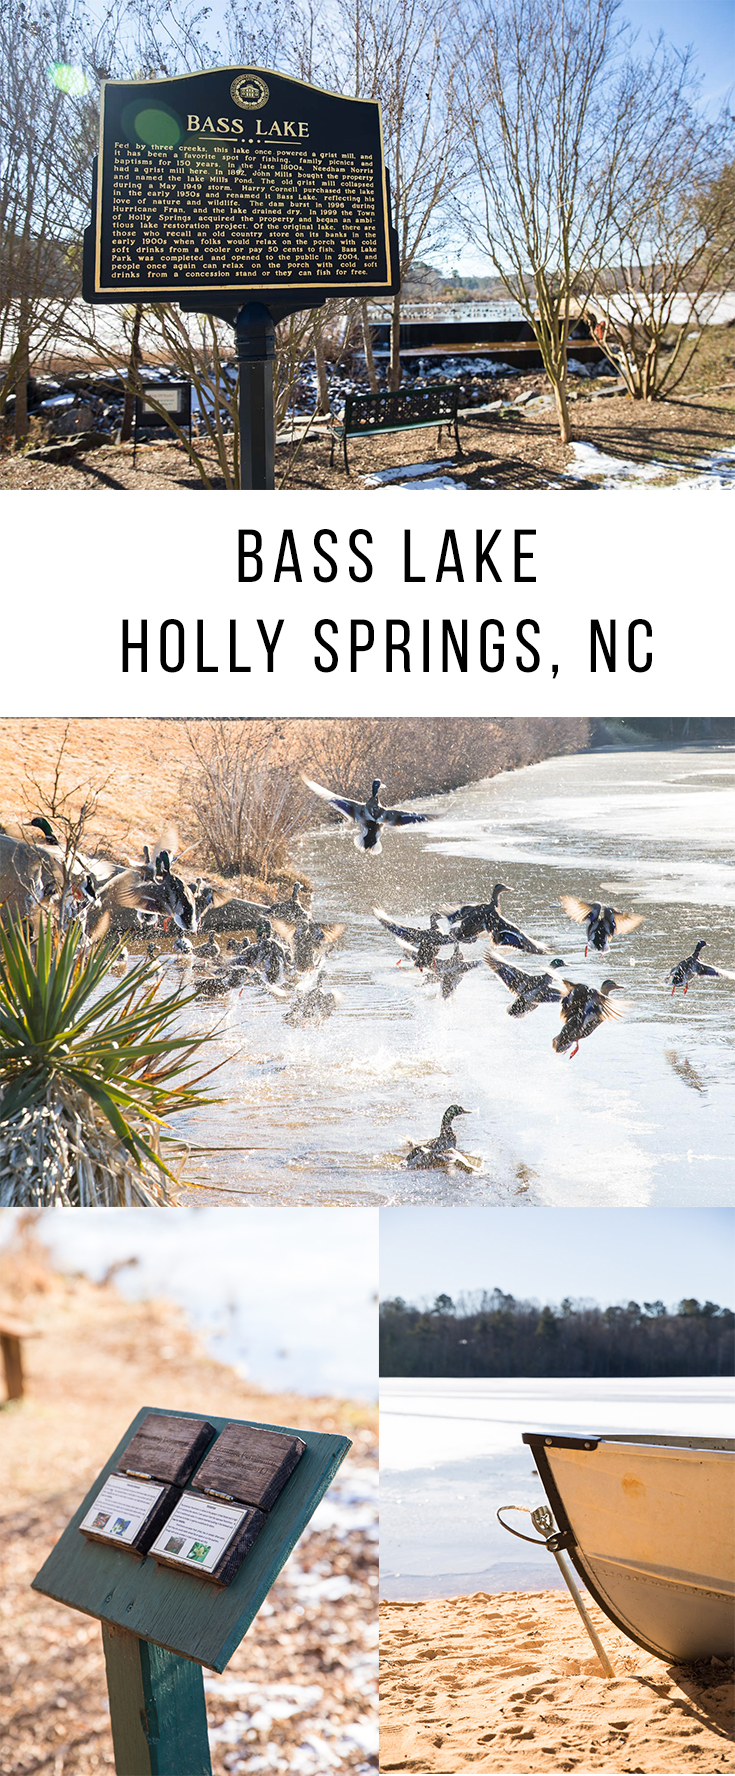 Bass Lake - Holly Springs, NC